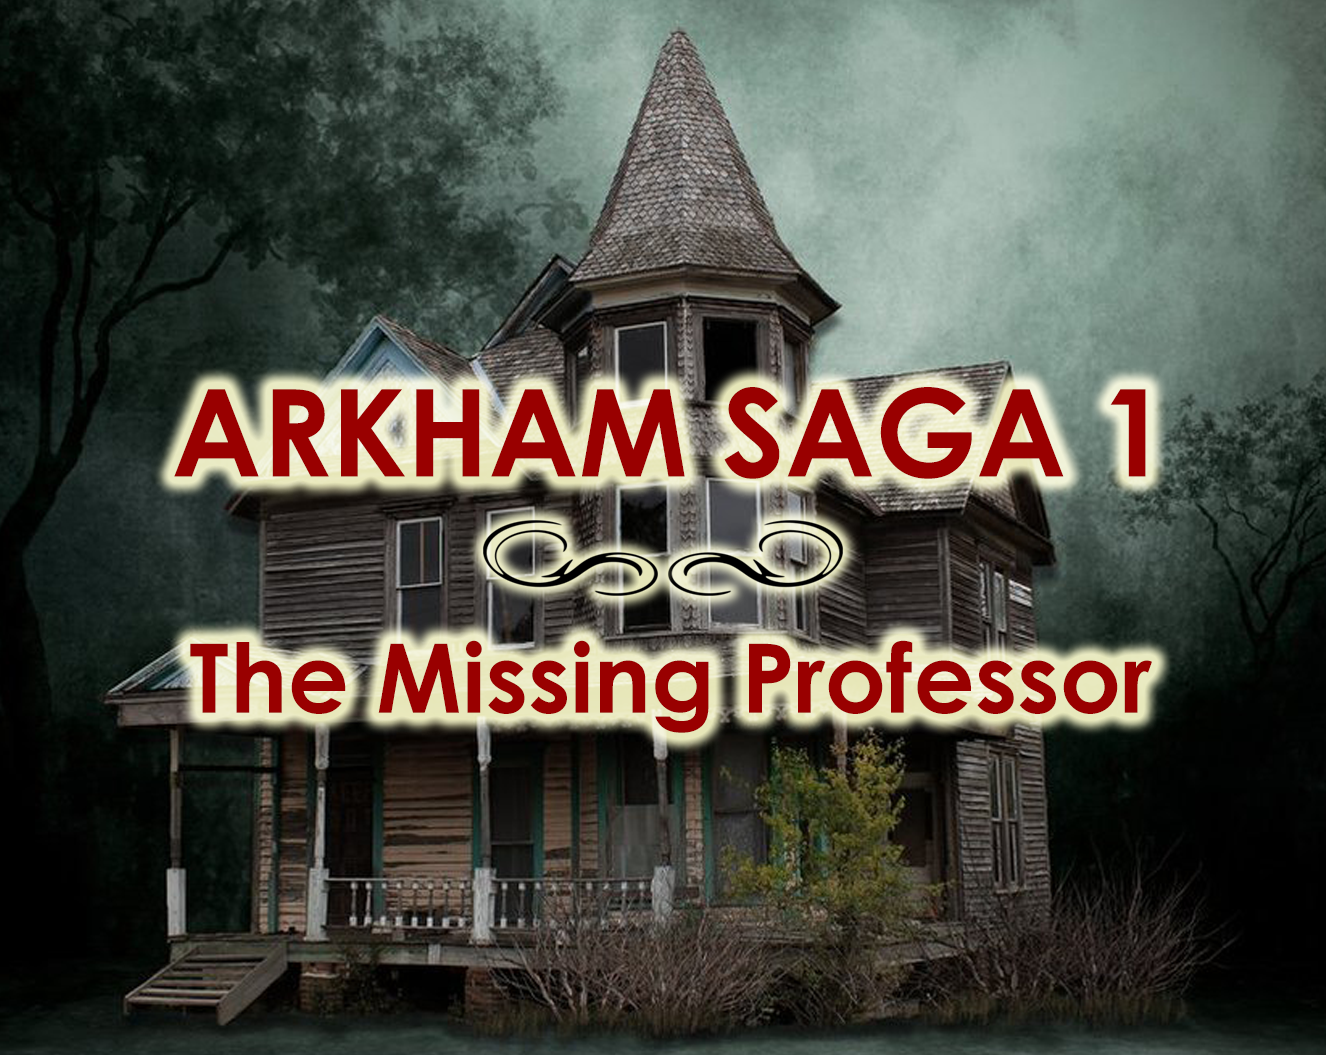 Sneak Peak into Arkham Saga 1 – Coming in March!